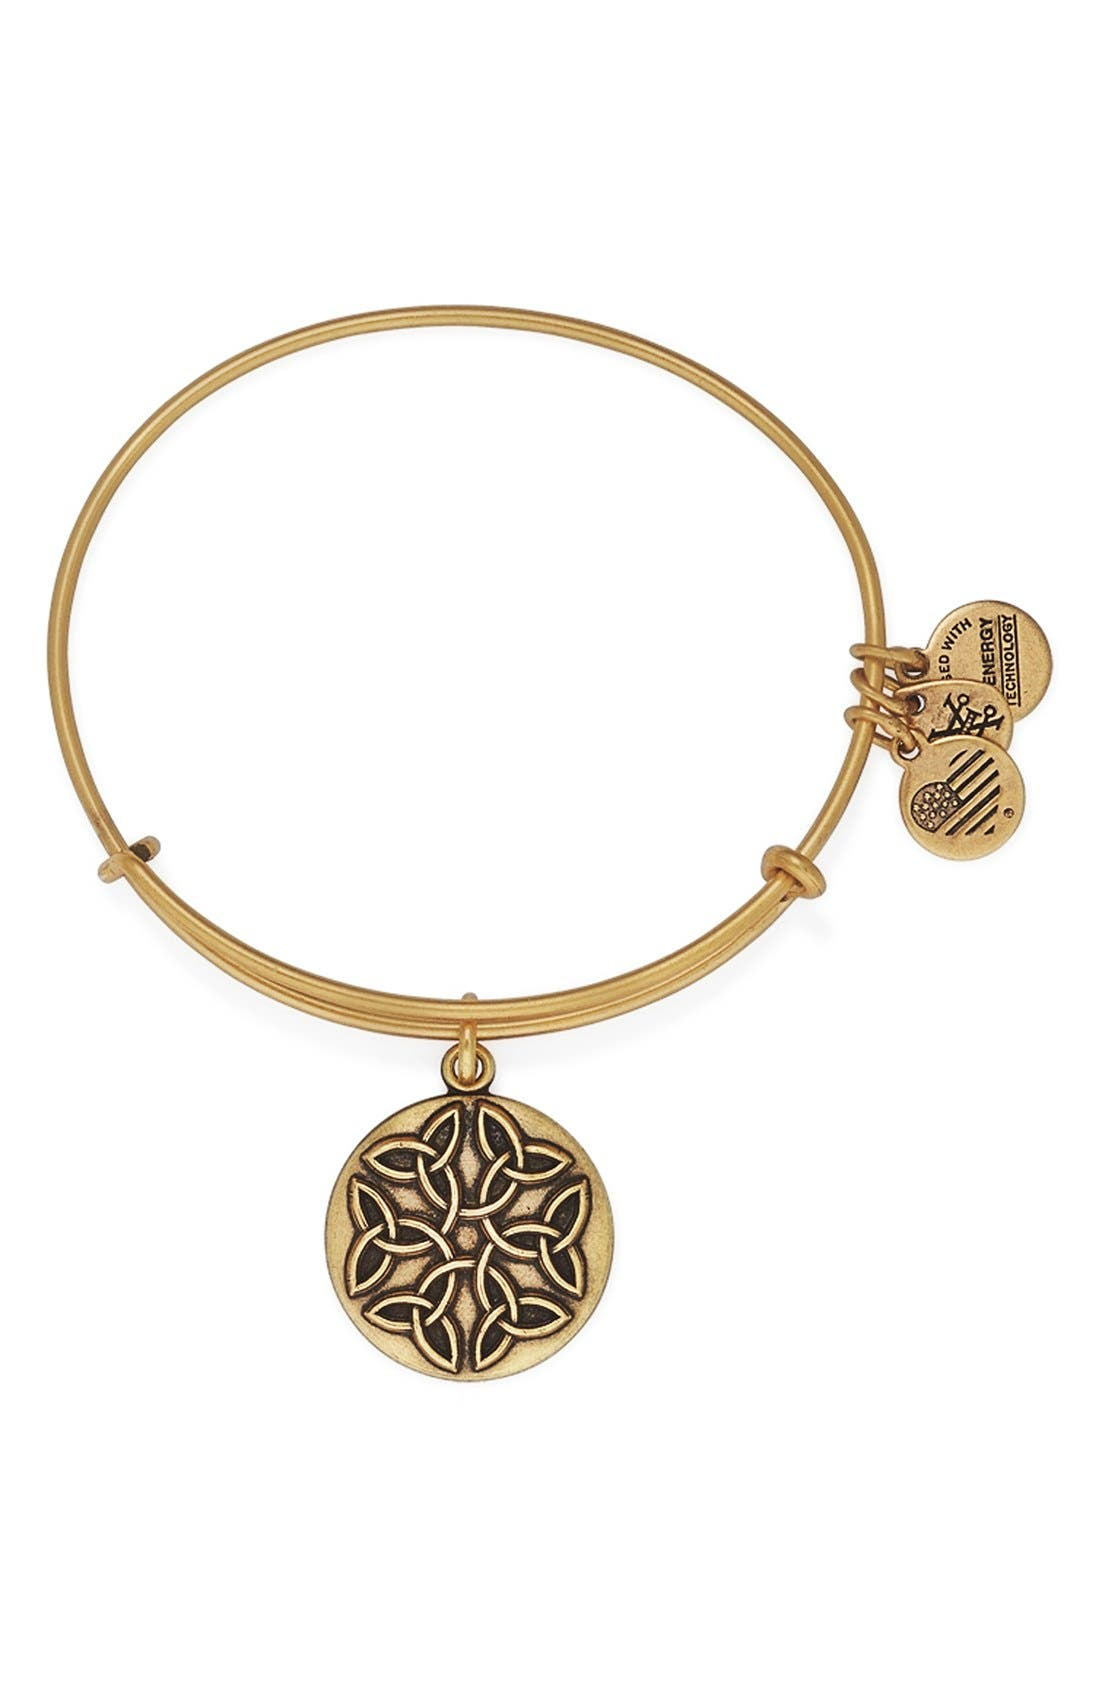 Alternate Image 1 Selected - Alex and Ani 'Endless Knot' Bangle Bracelet